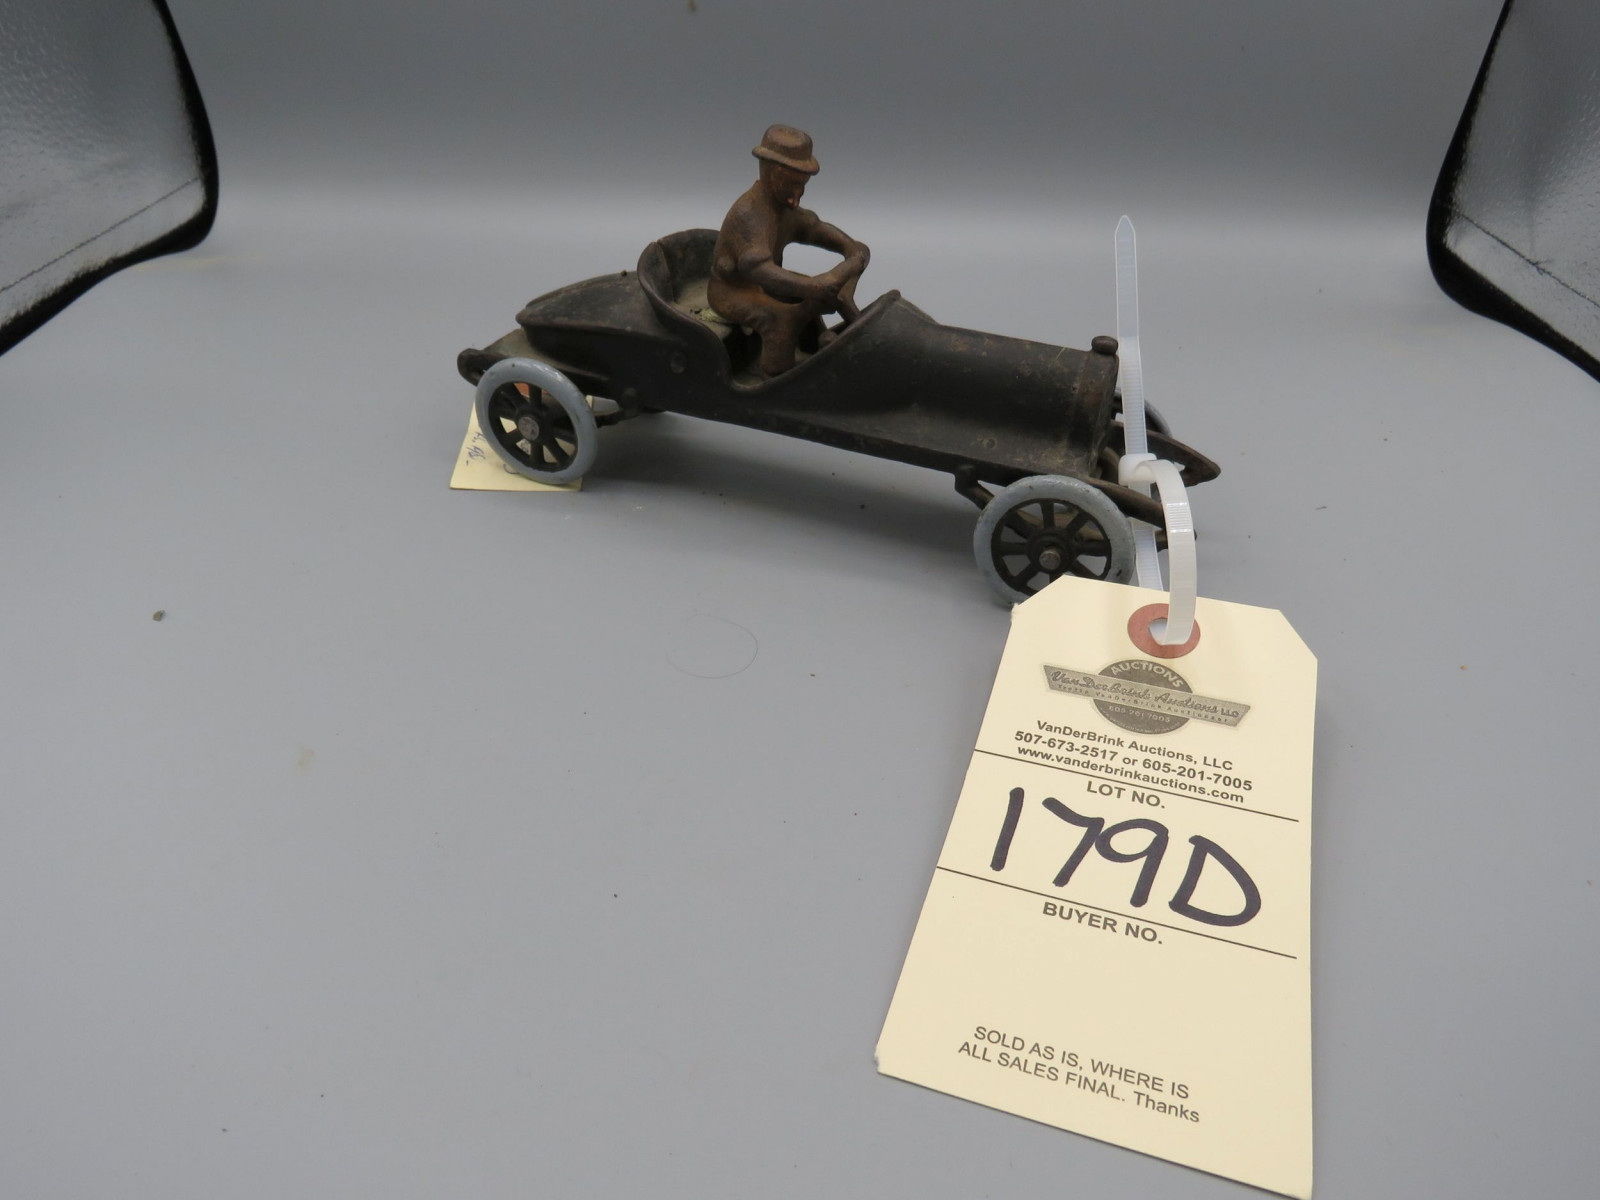 Cast Iron Vintage Race Car with Driver @1910-13 Approx. 4 inches - Image 1